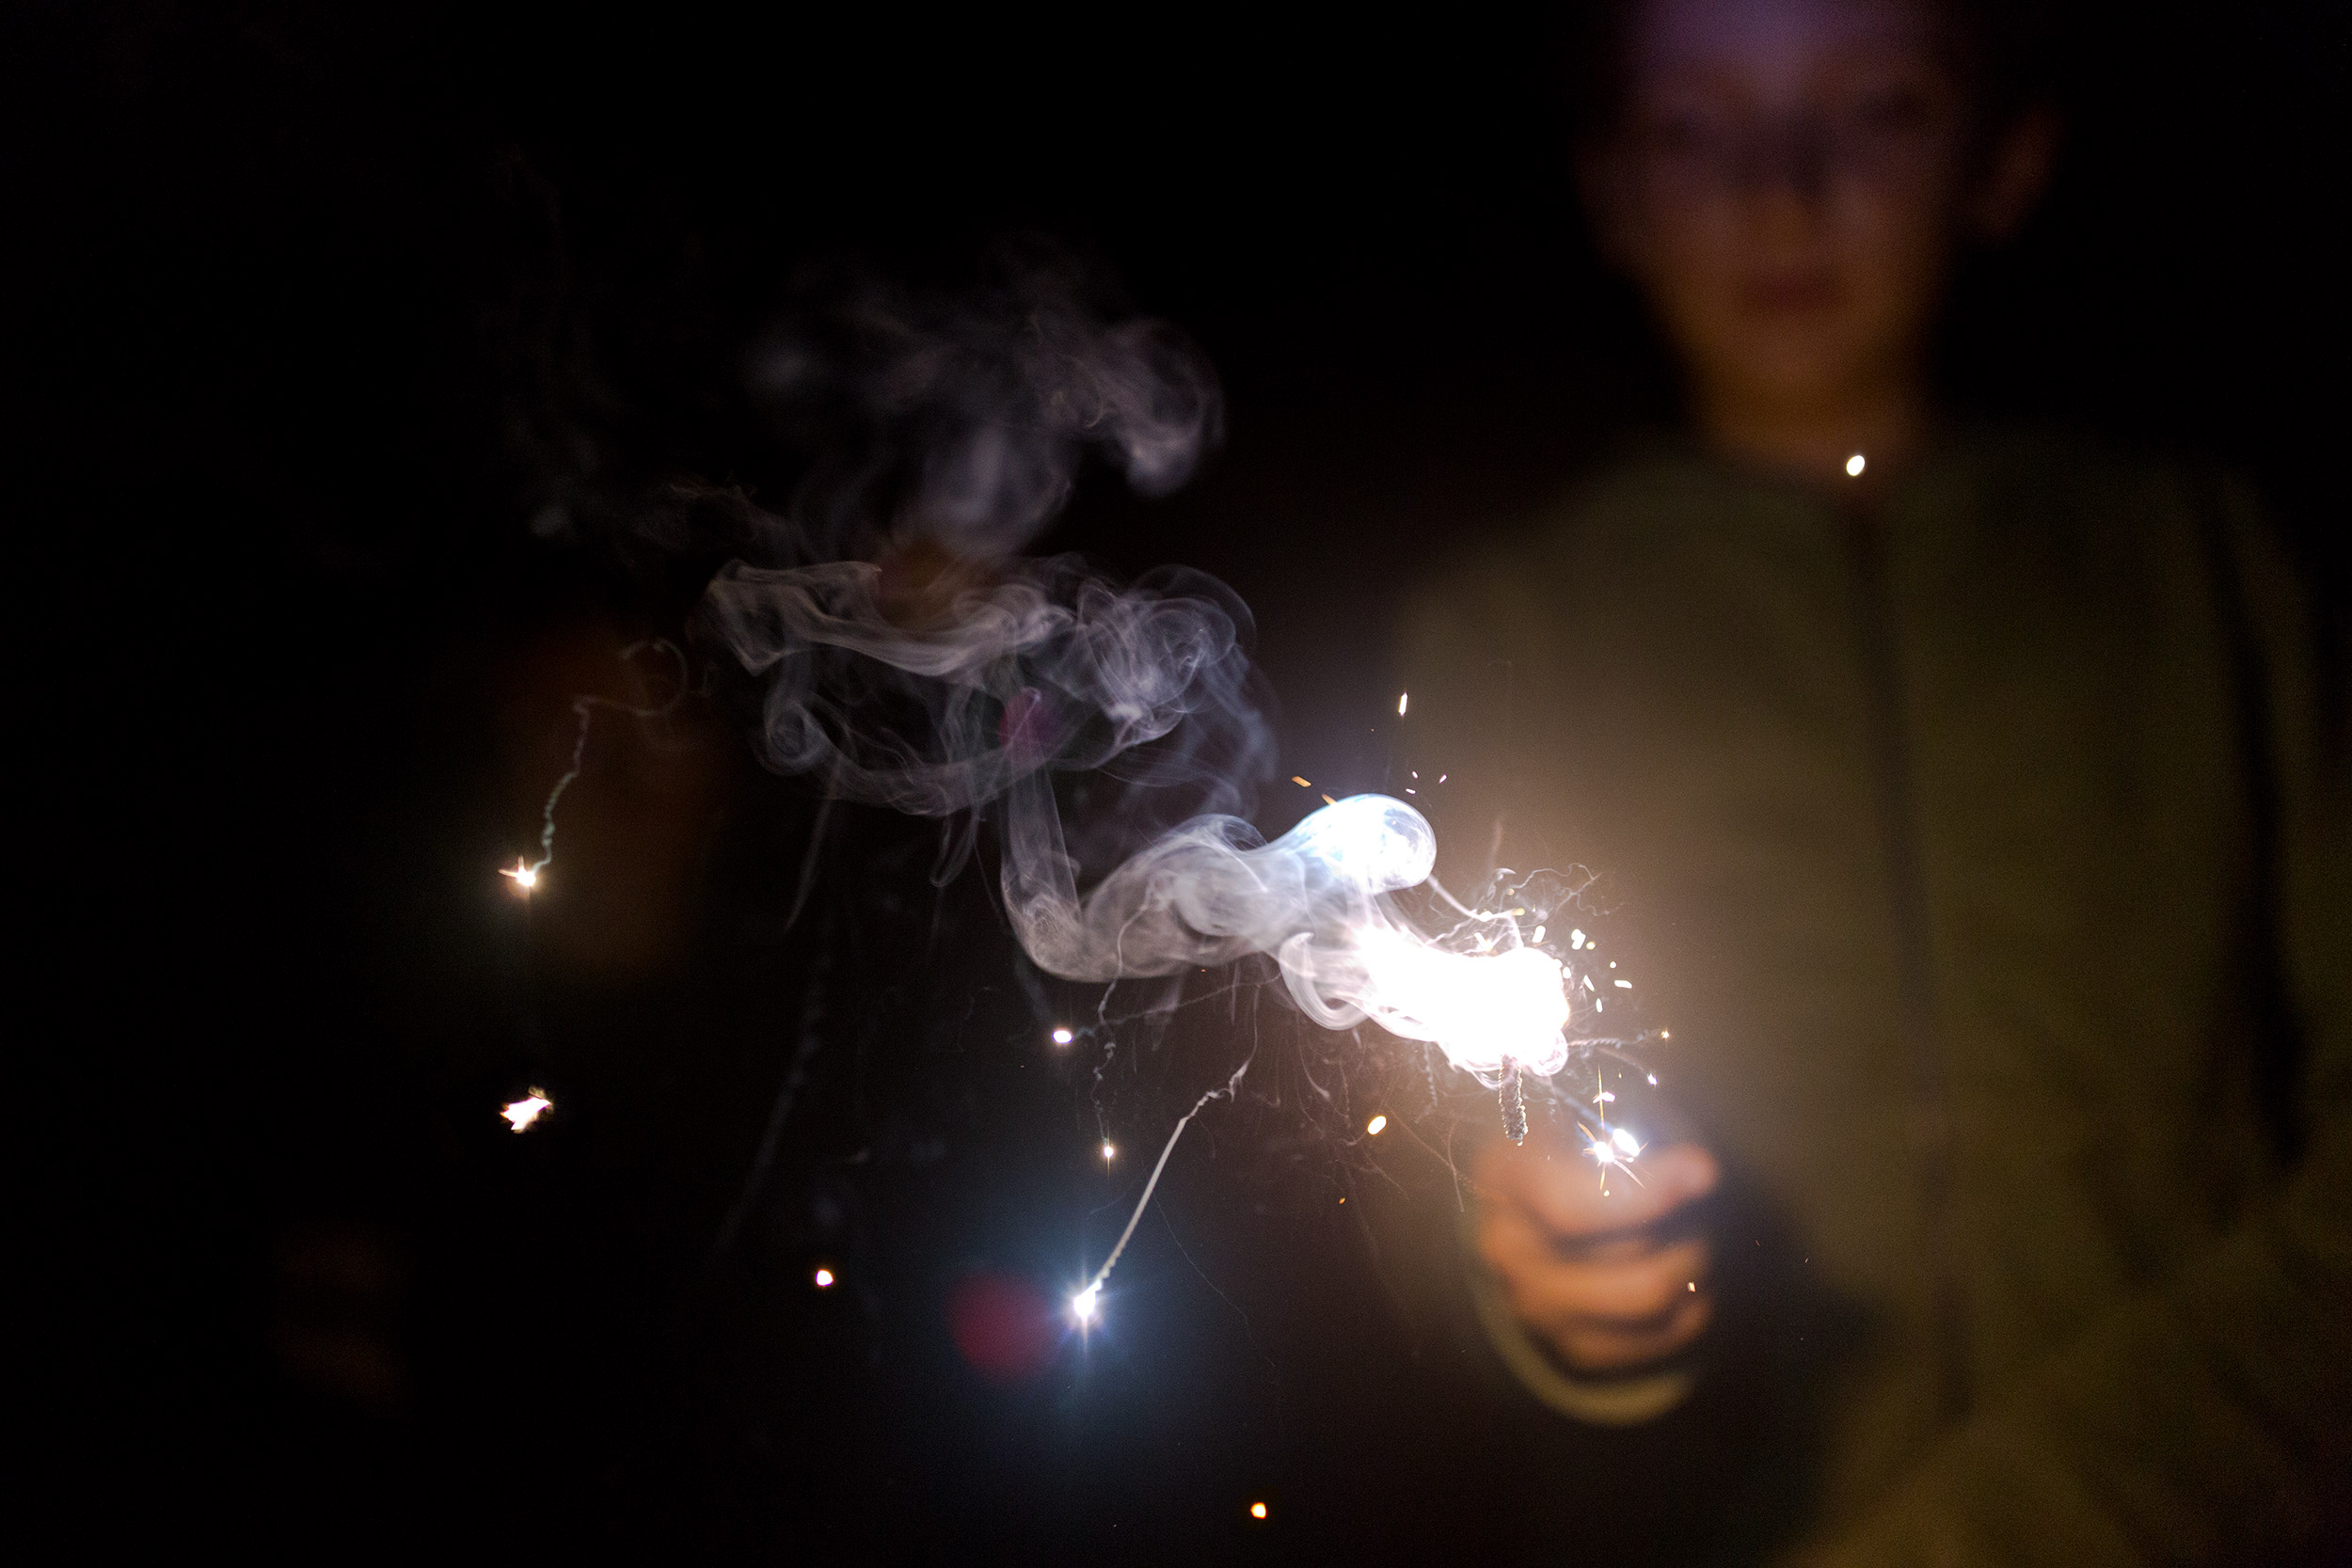 CAMPING WITH KIDS | FAMILY | CHILDHOOD | Play | Discovery | Sparkler | Explore | 26